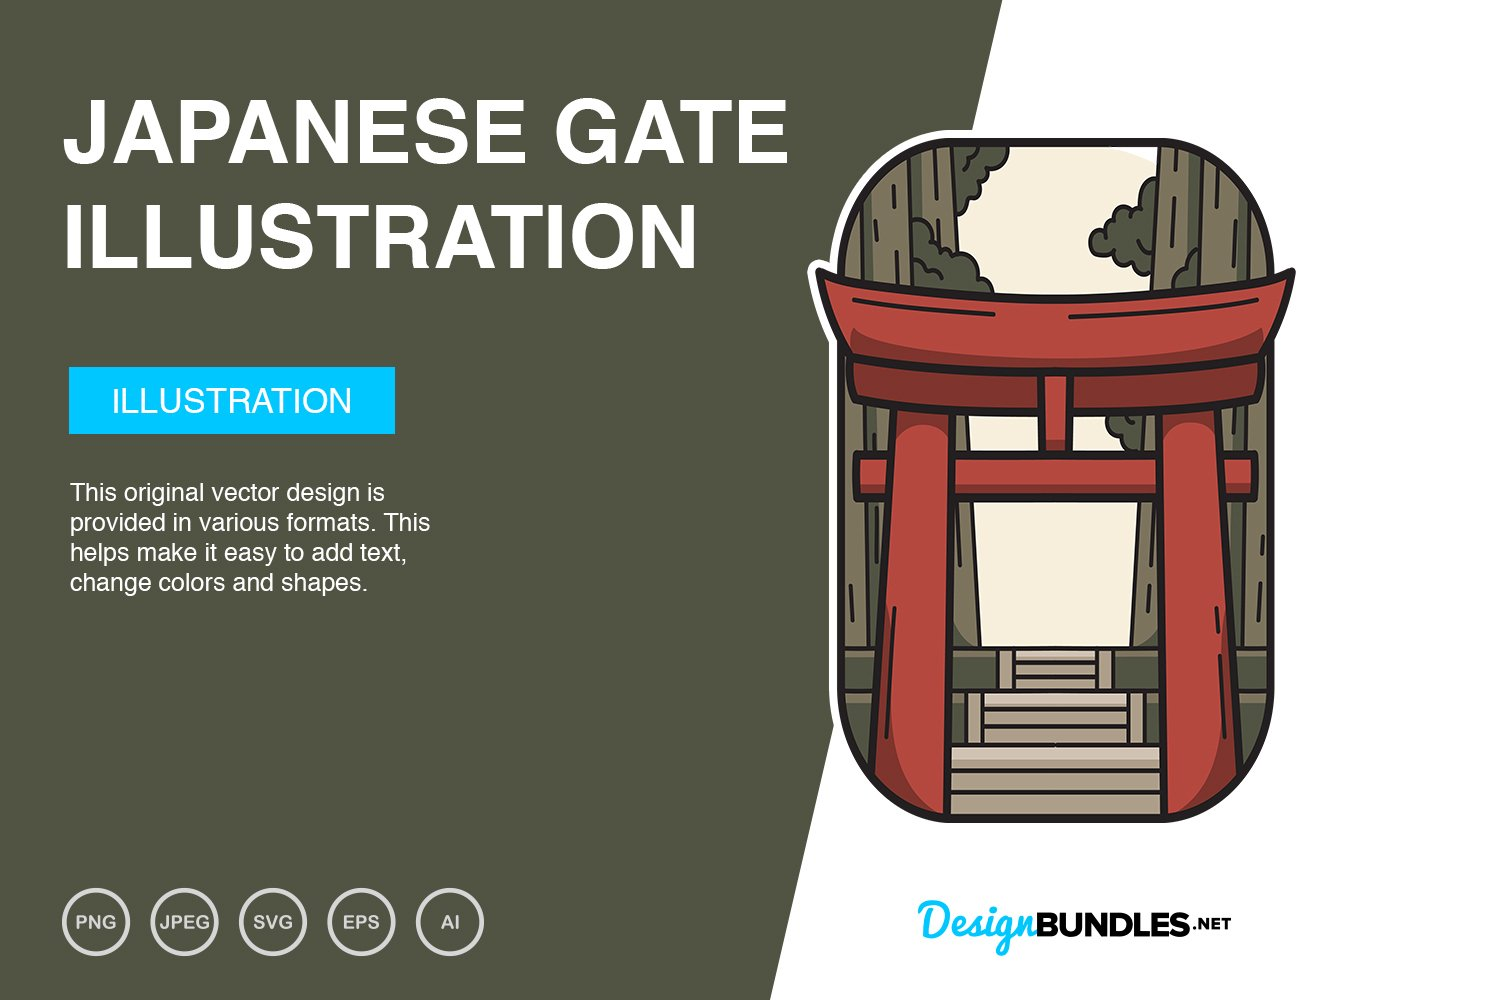 Japanese Gate Vector Illustration example image 1